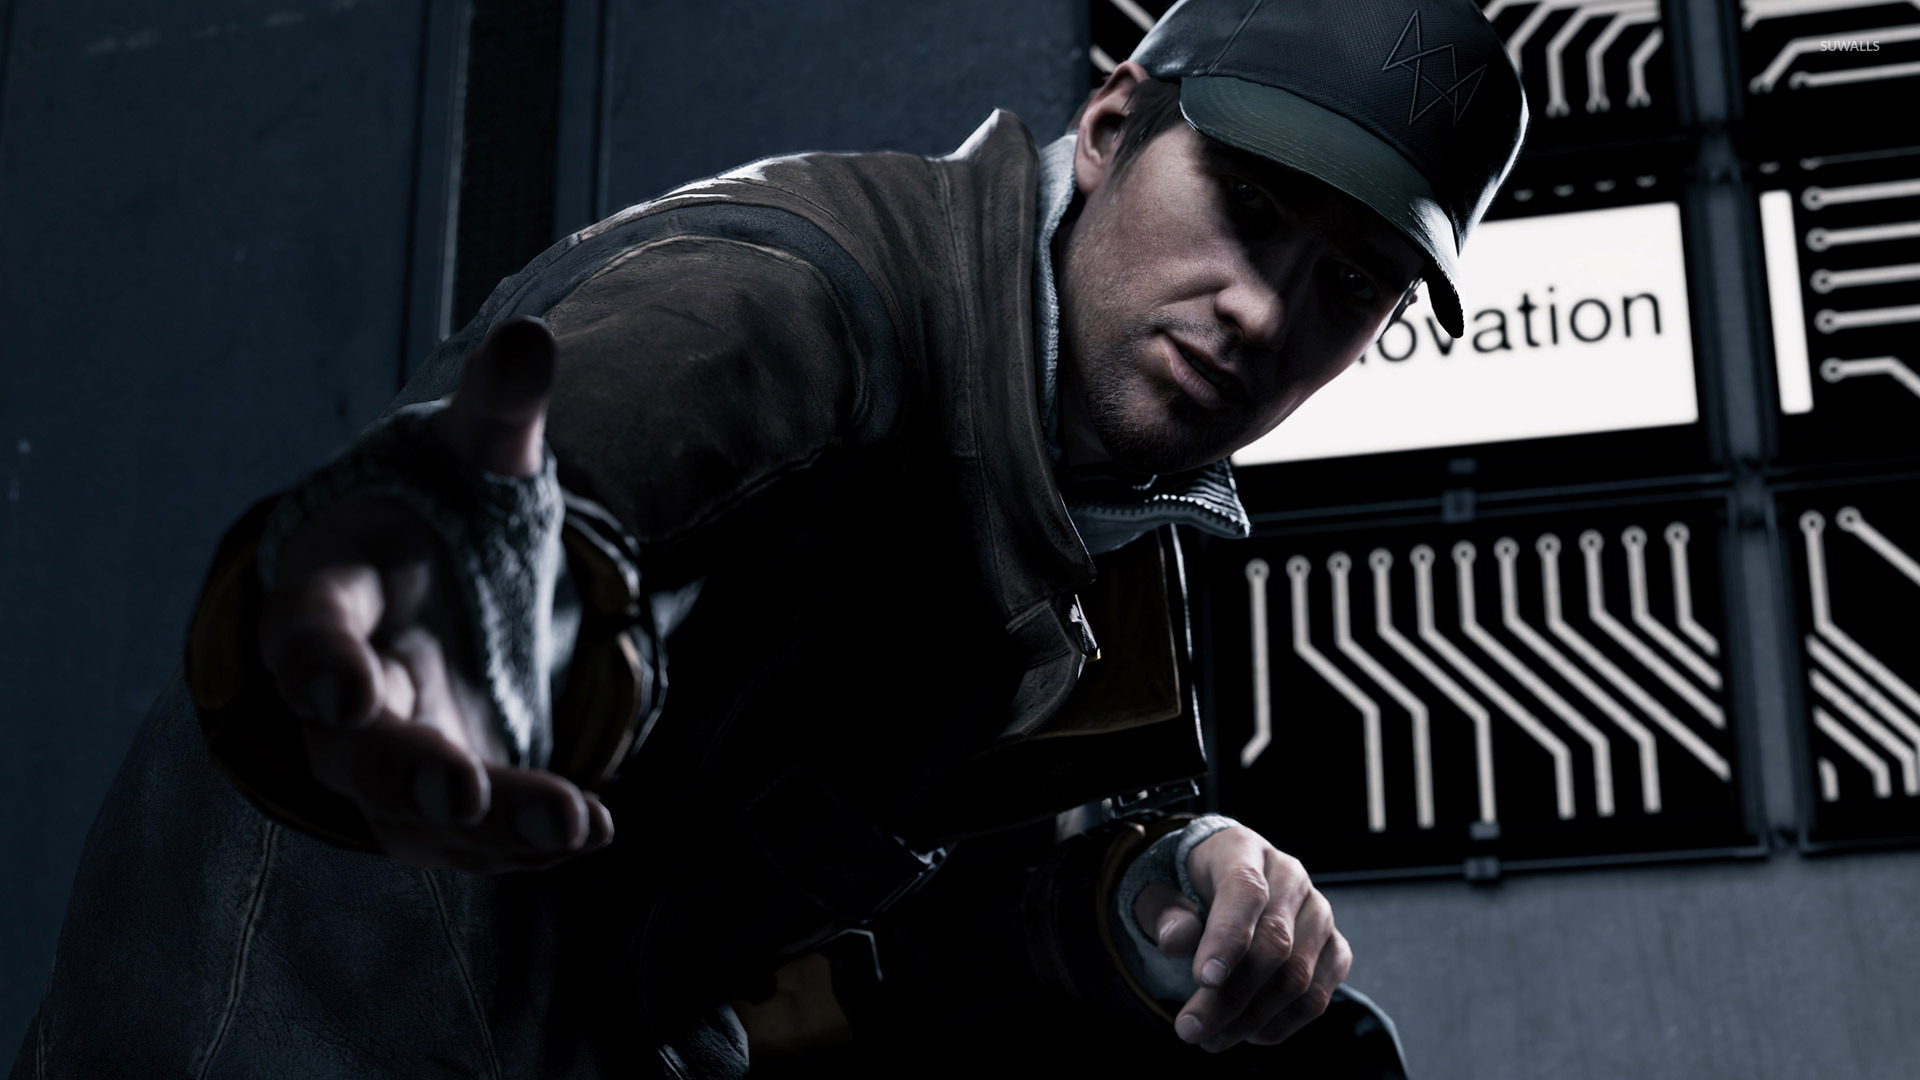 Aiden Pearce Watch Dogs 11 Wallpaper Game Wallpapers 30970 Images, Photos, Reviews